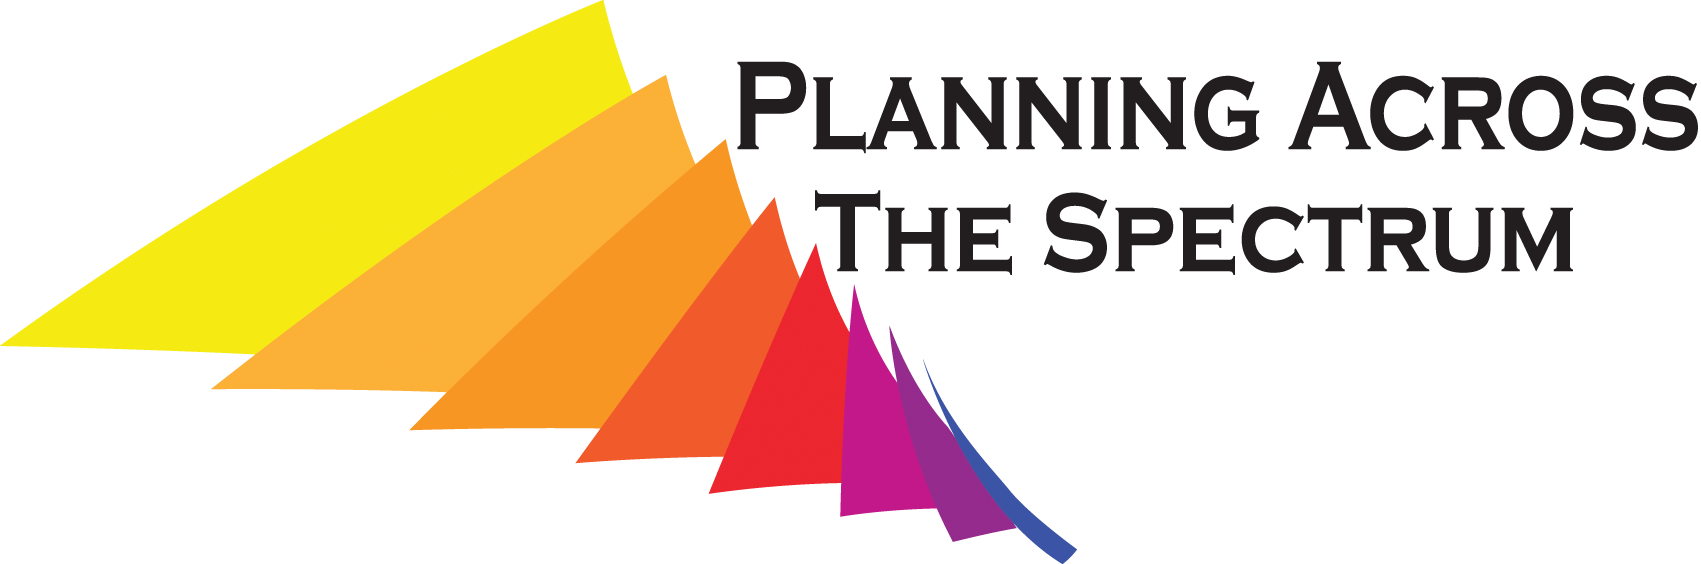 Planning Across The Spectrum Footer Logo